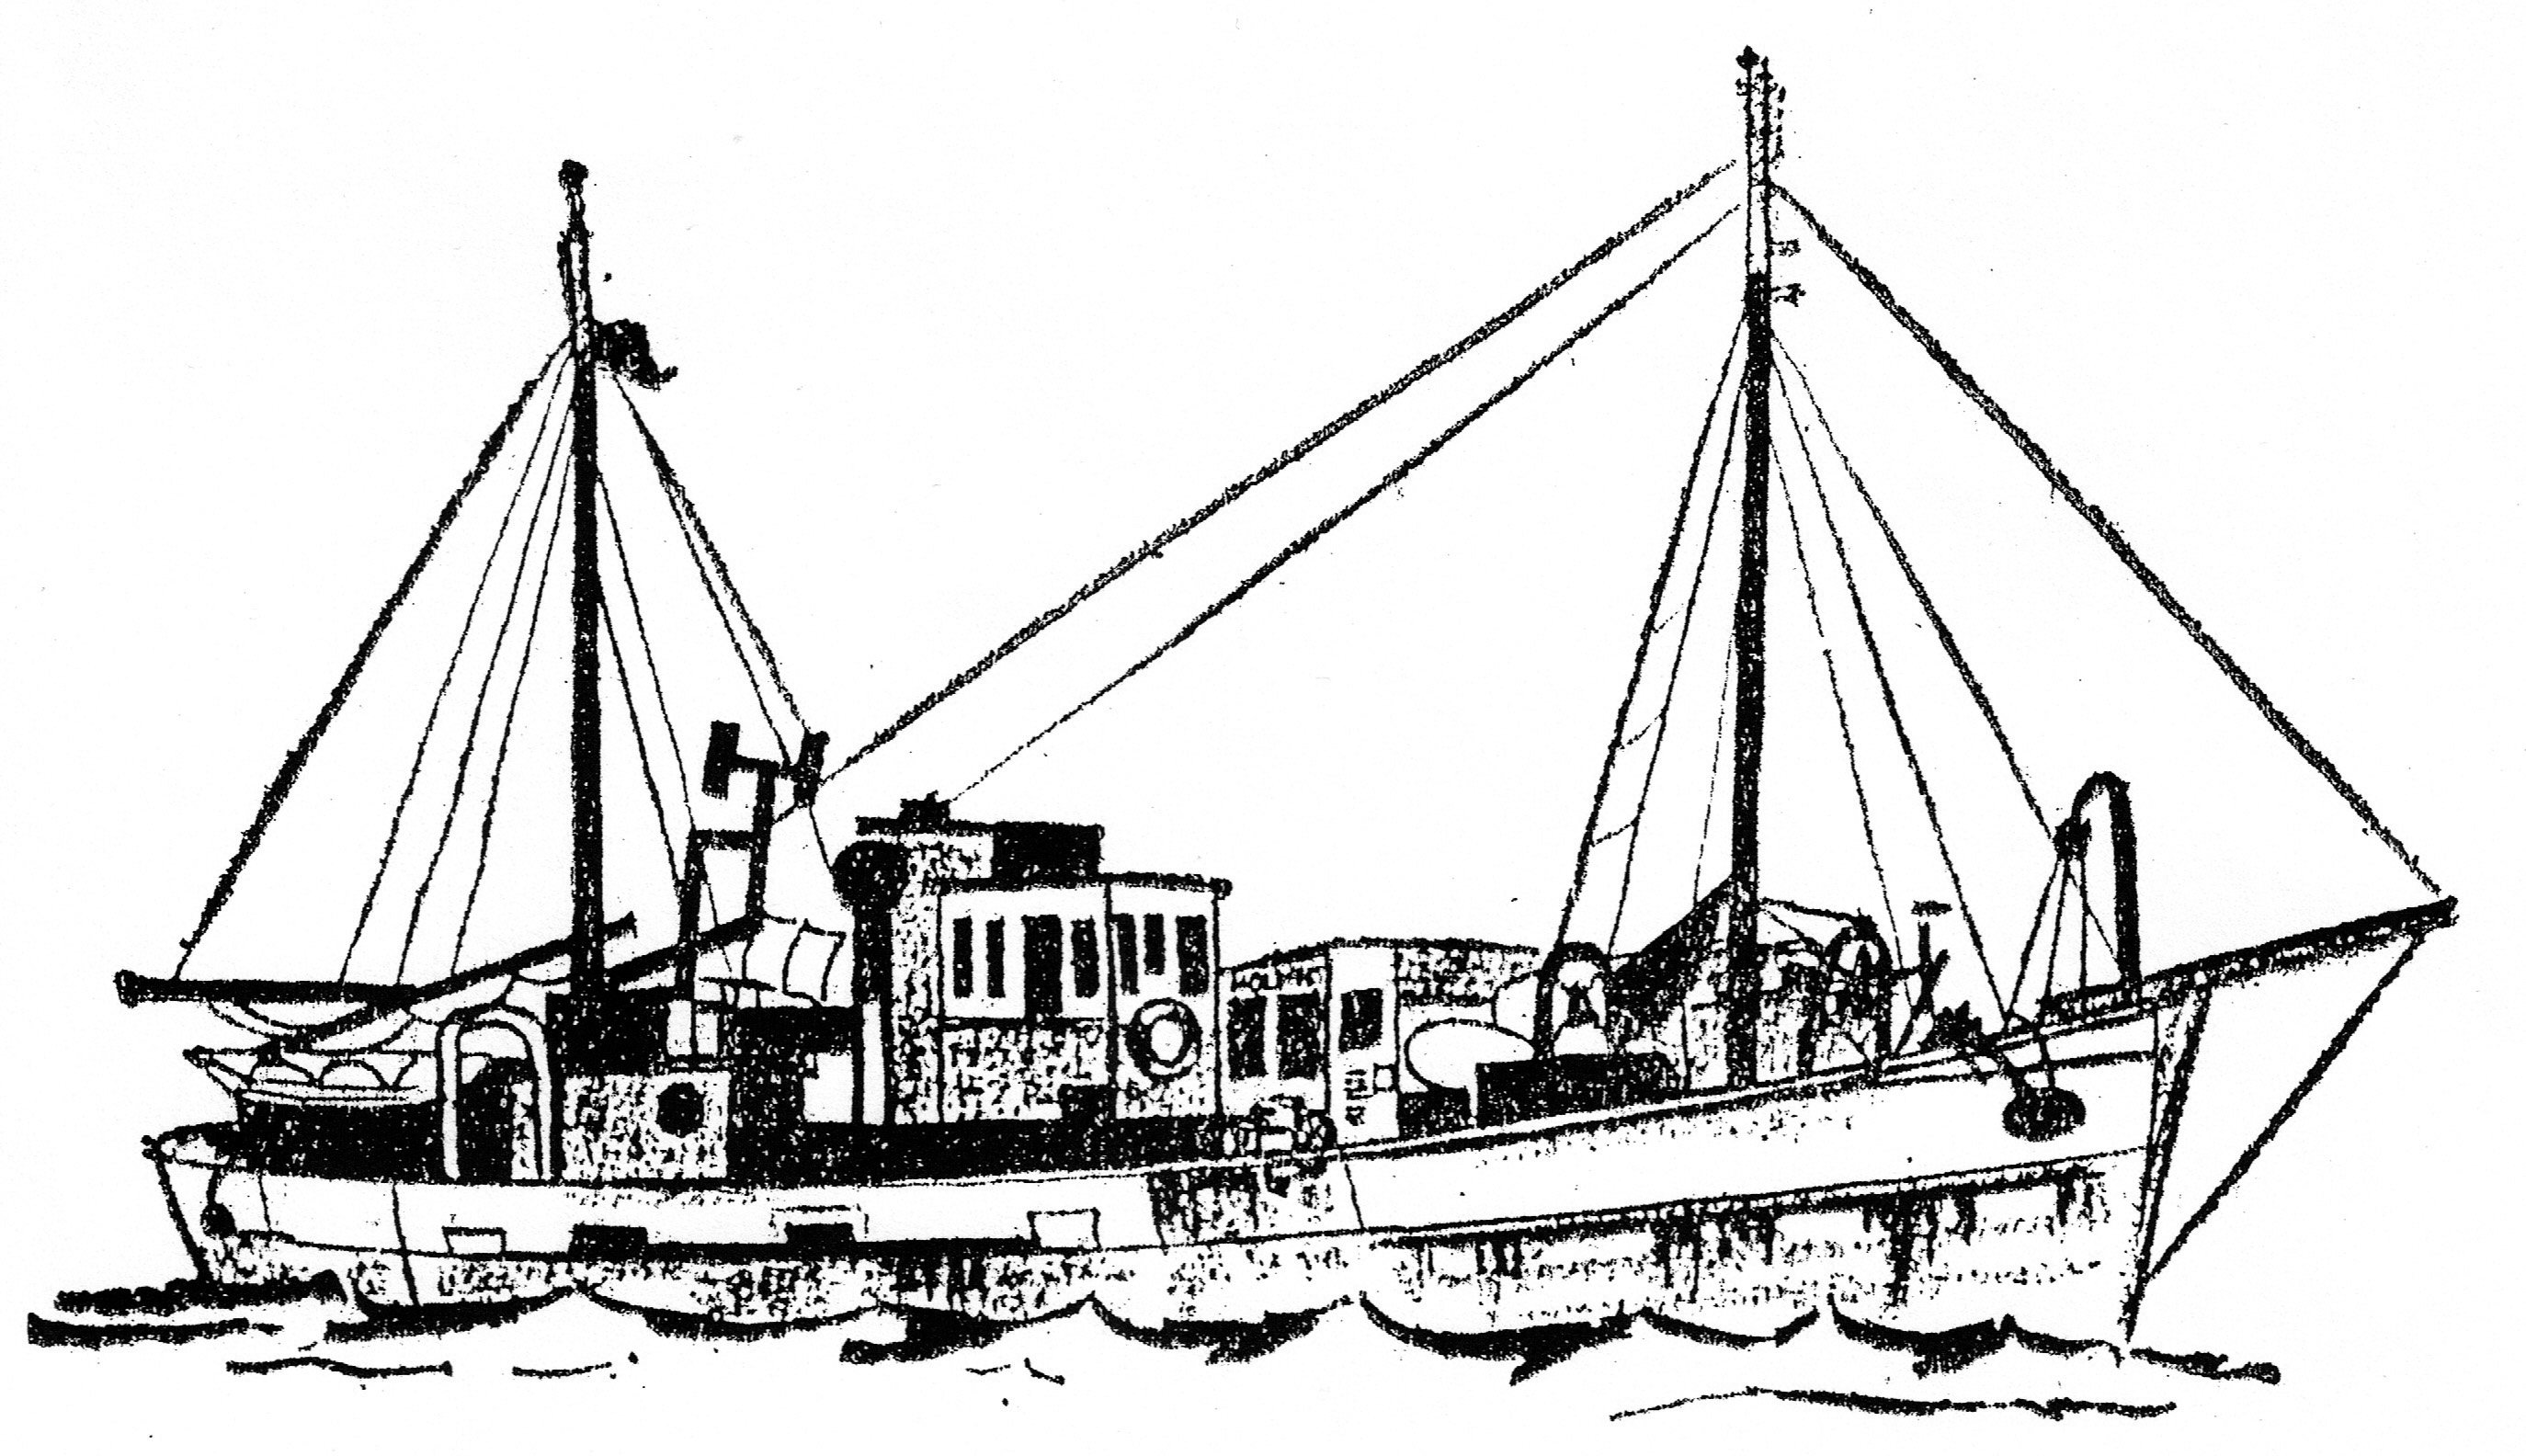 A sketch of the Heather George.